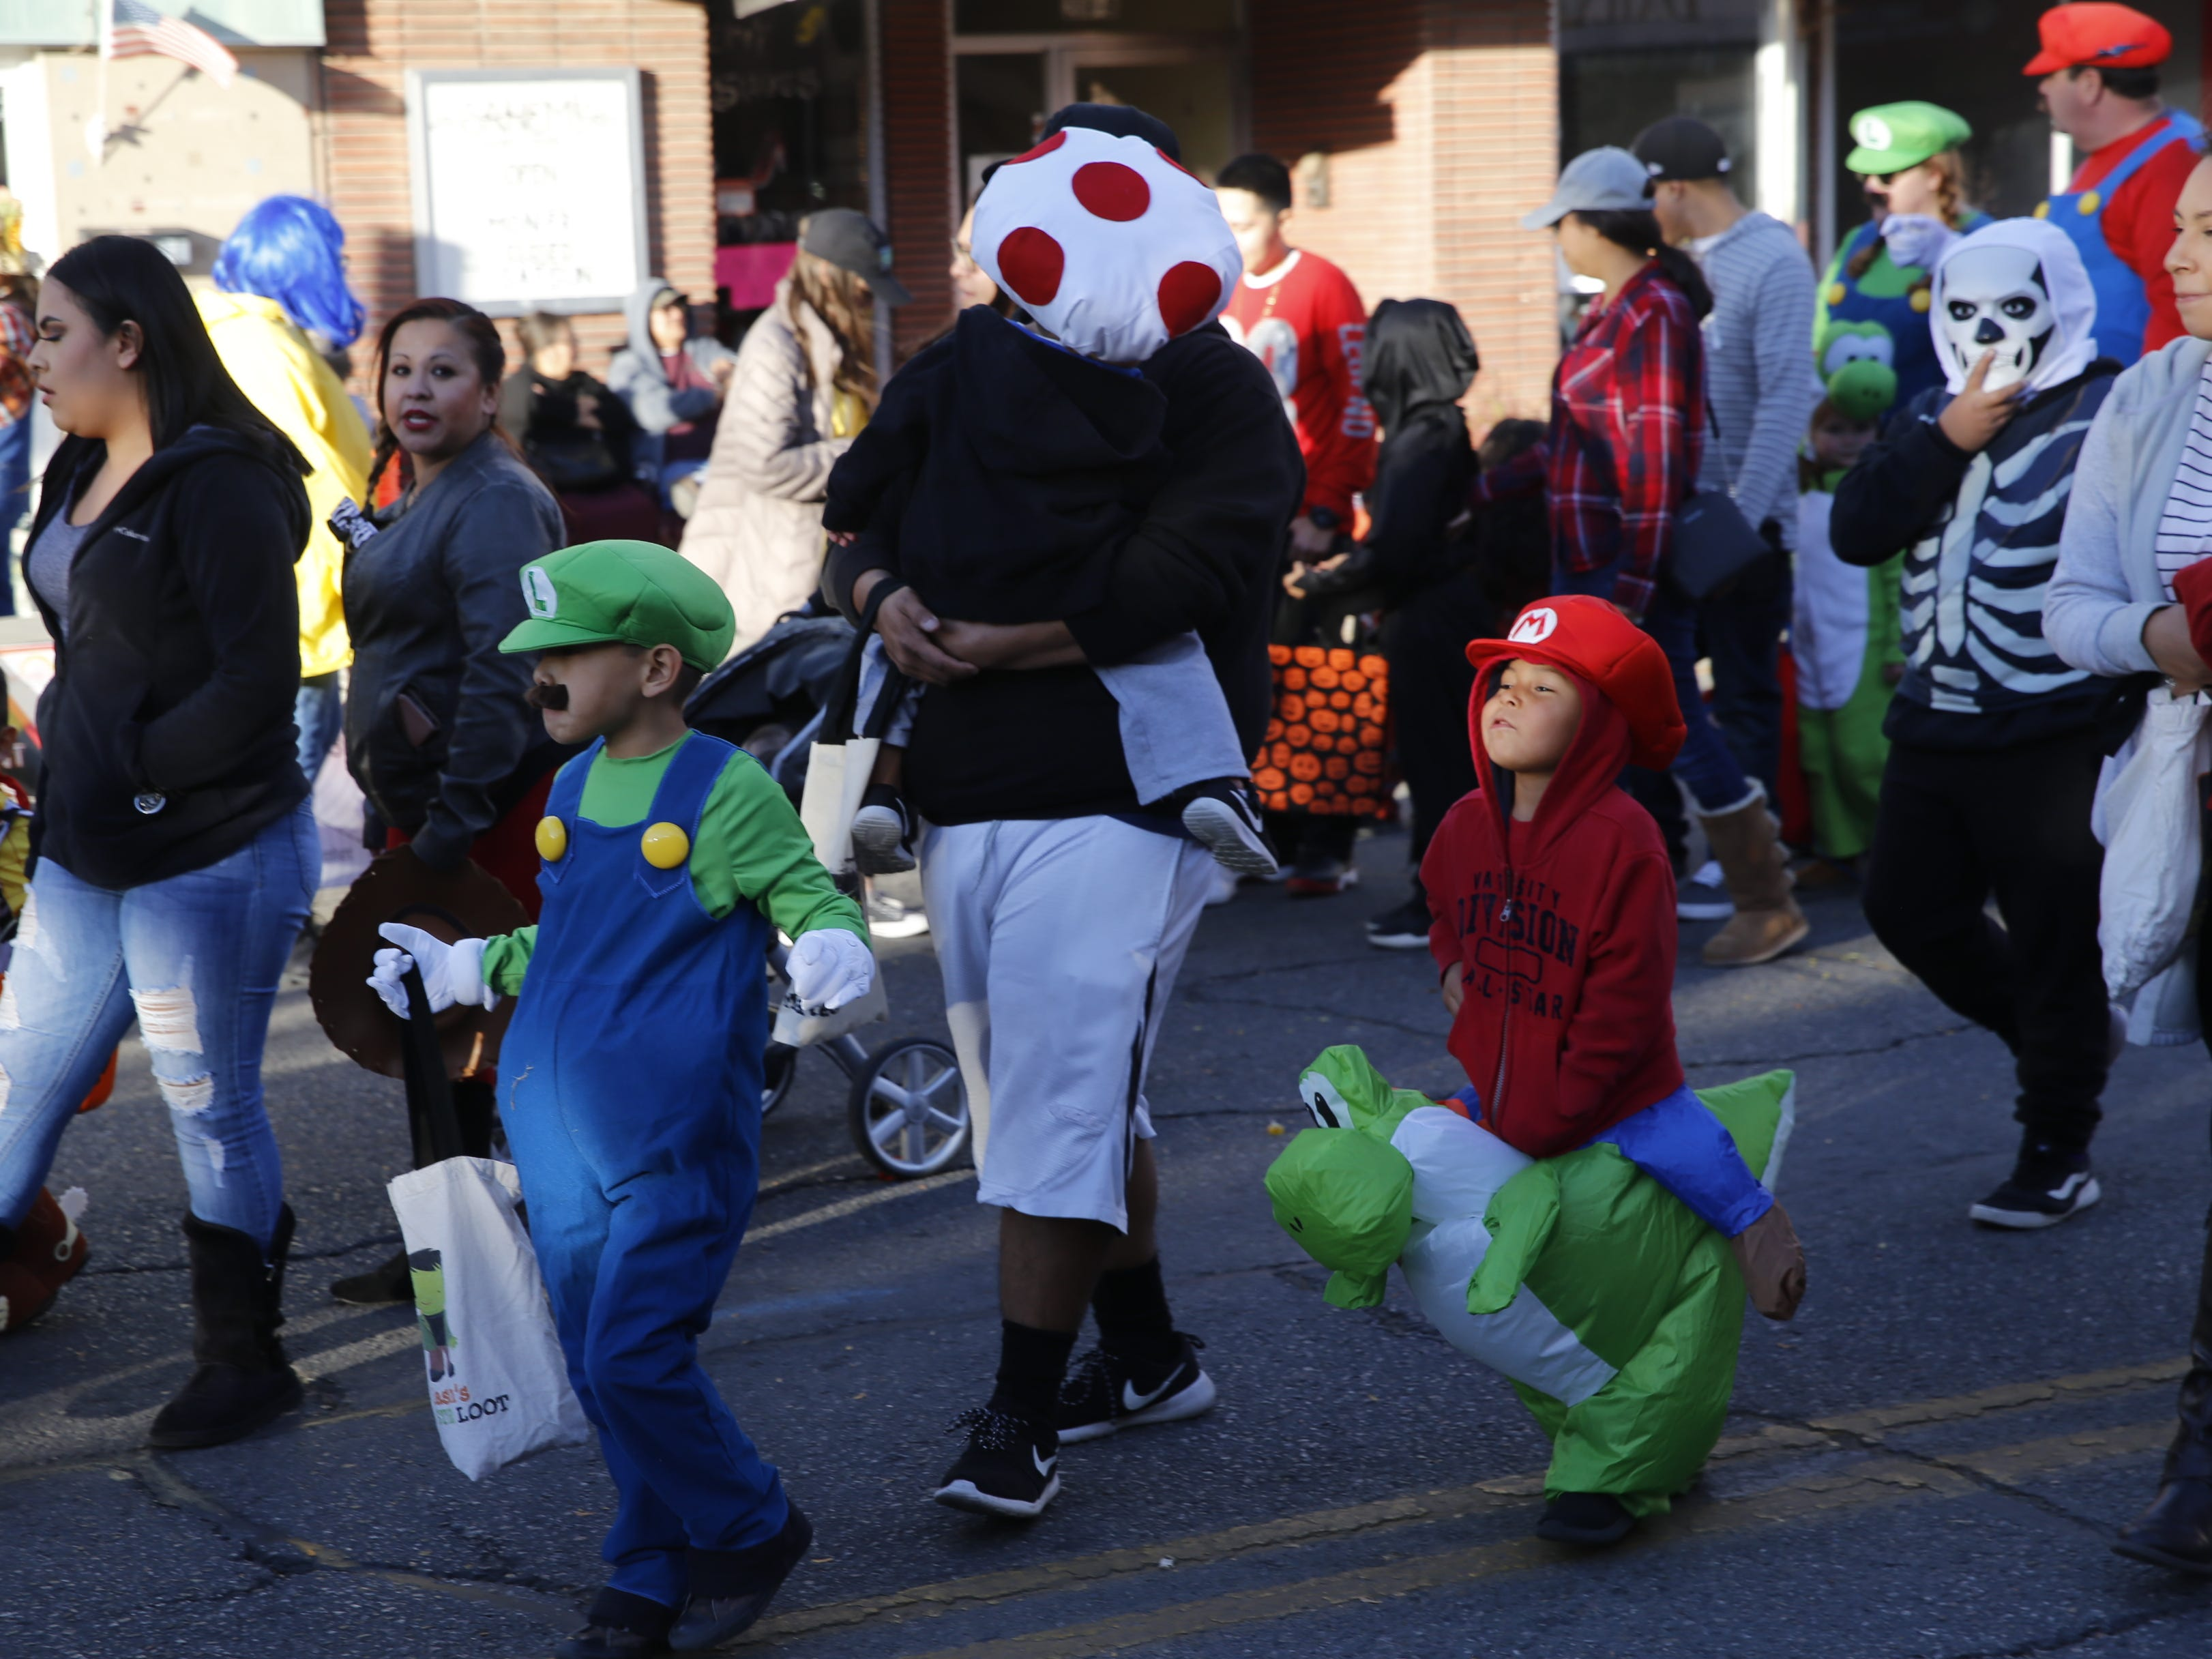 Trick or treaters walk down Main Street during PooPalooza Wednesday in Farmington.